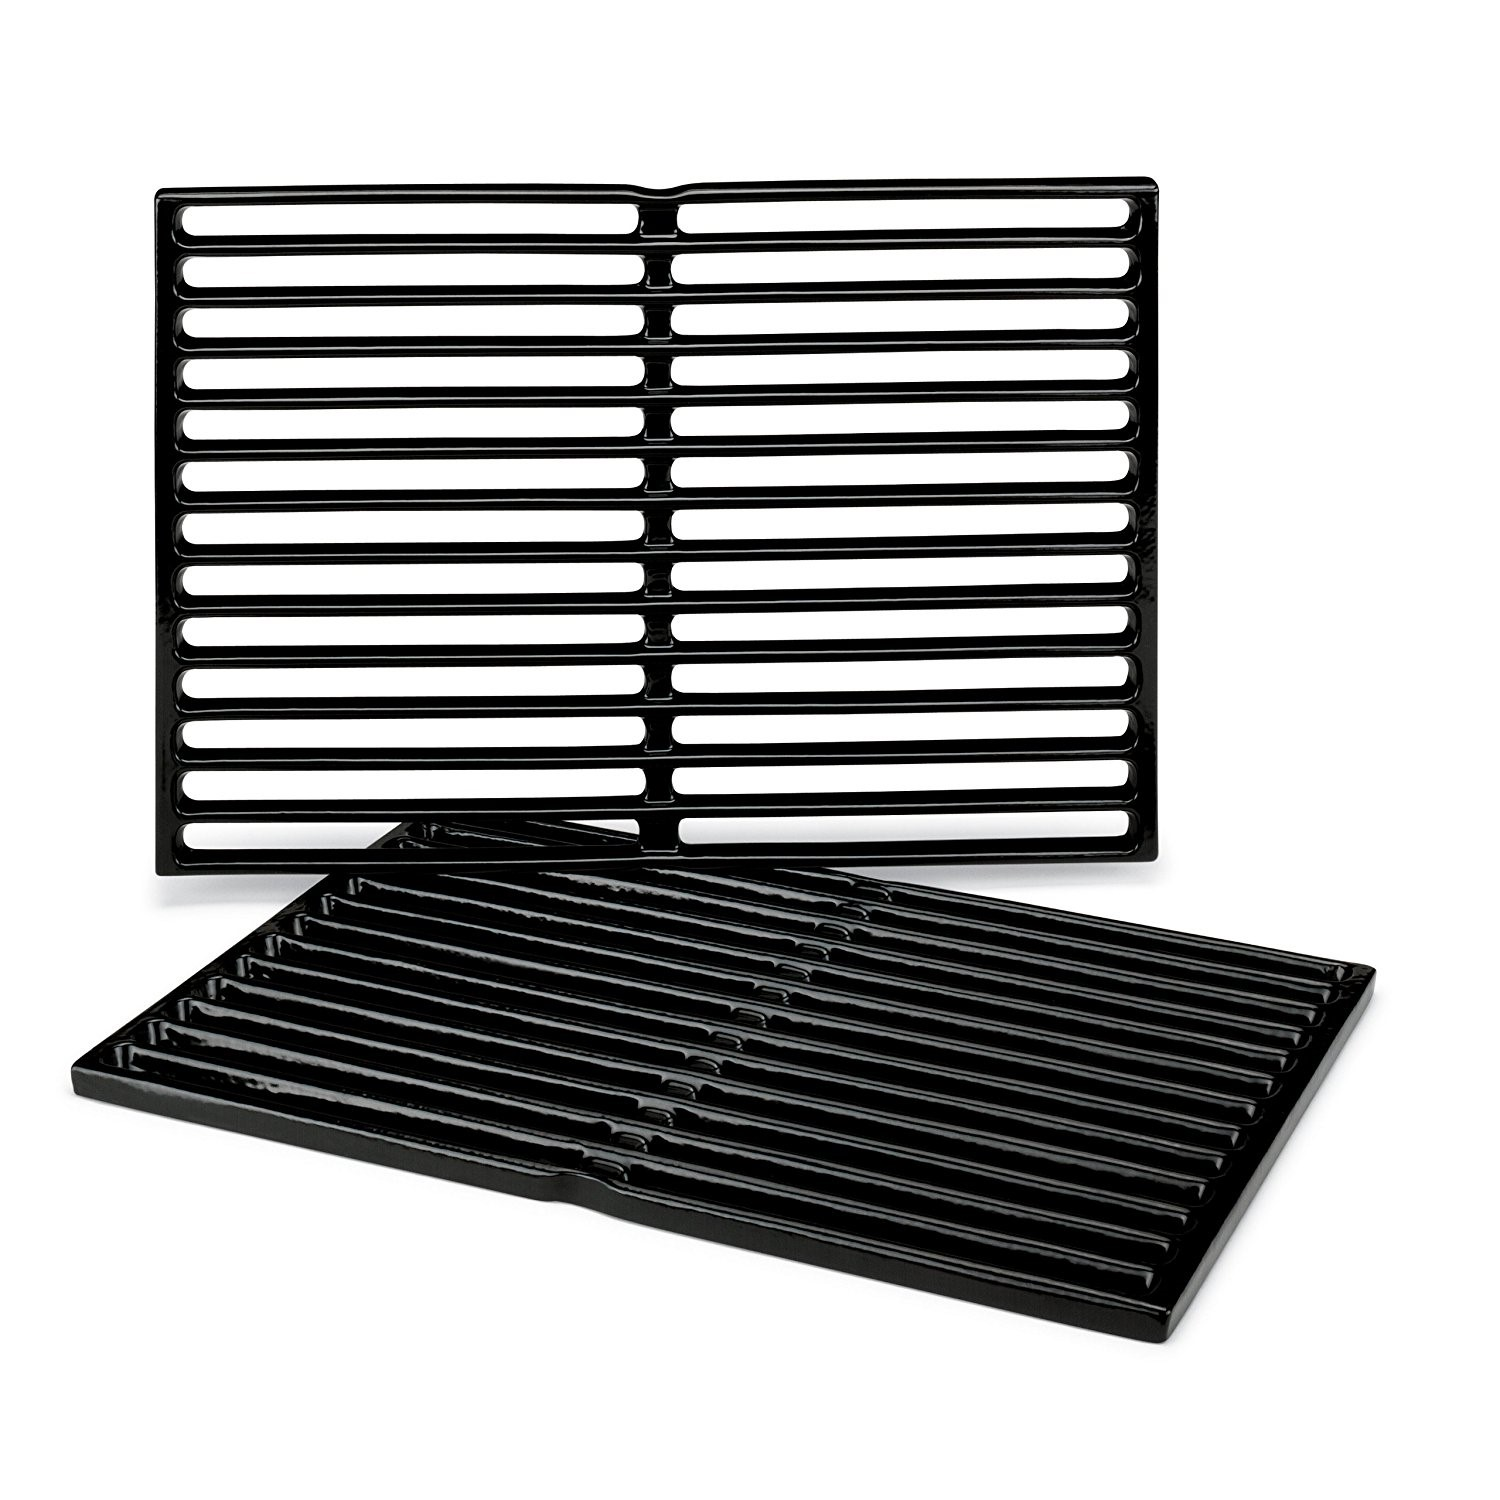 PORCELAIN-ENAMELED CAST-IRON COOKING GRATES: SPIRIT 200 (W/ SIDE MOUNTED CONTROL PANEL), SPIRIT 500 AND GENESIS SILVER A